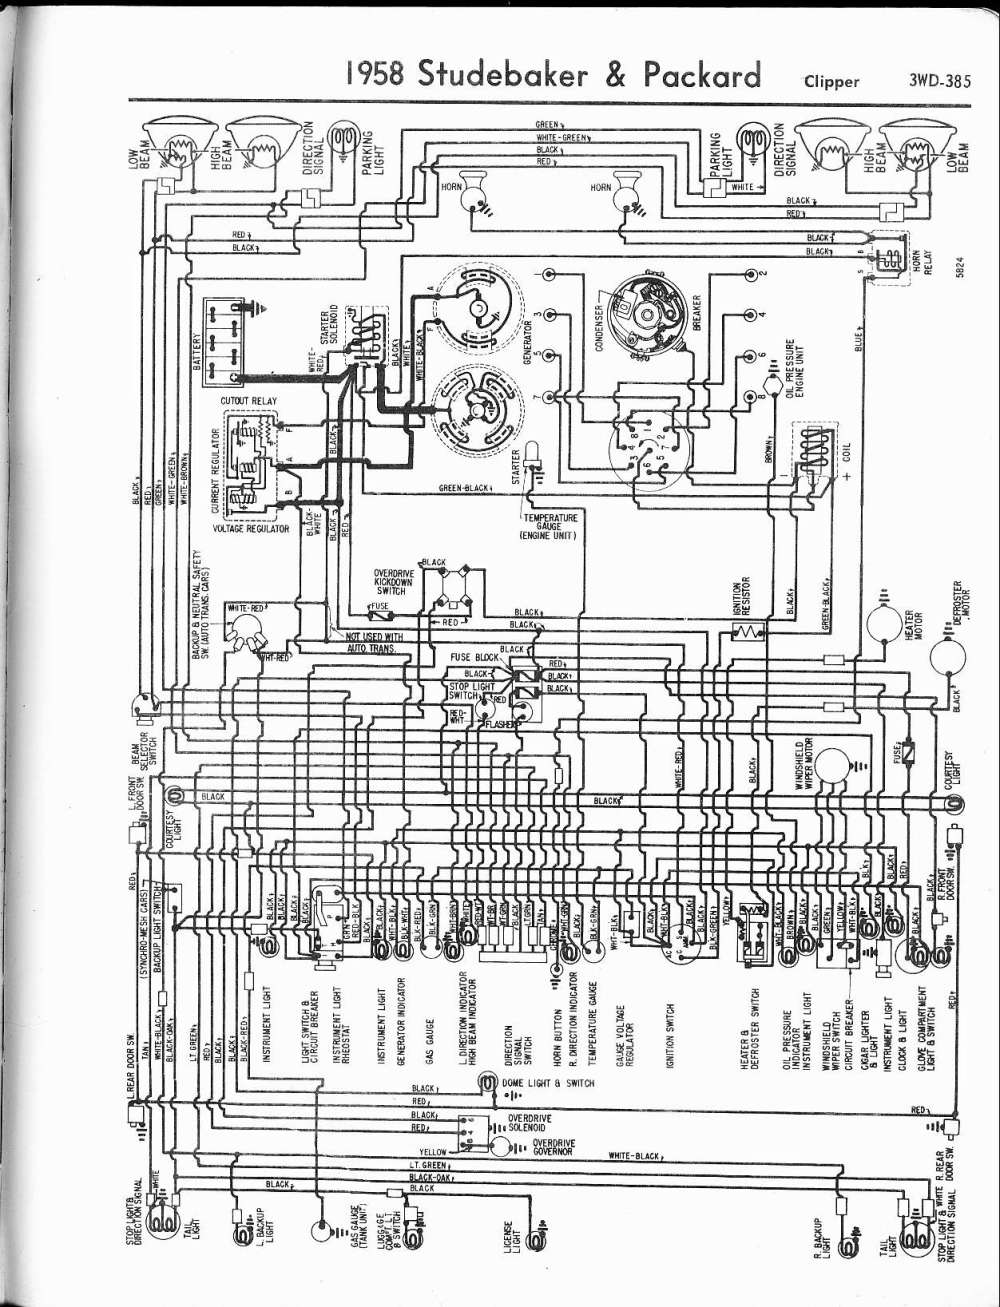 medium resolution of 1950 chevy generator wiring diagram further japanese money worksheet rh 149 28 9 5 albumss80repairpictures765picturetimingmarkdiagramdiagram